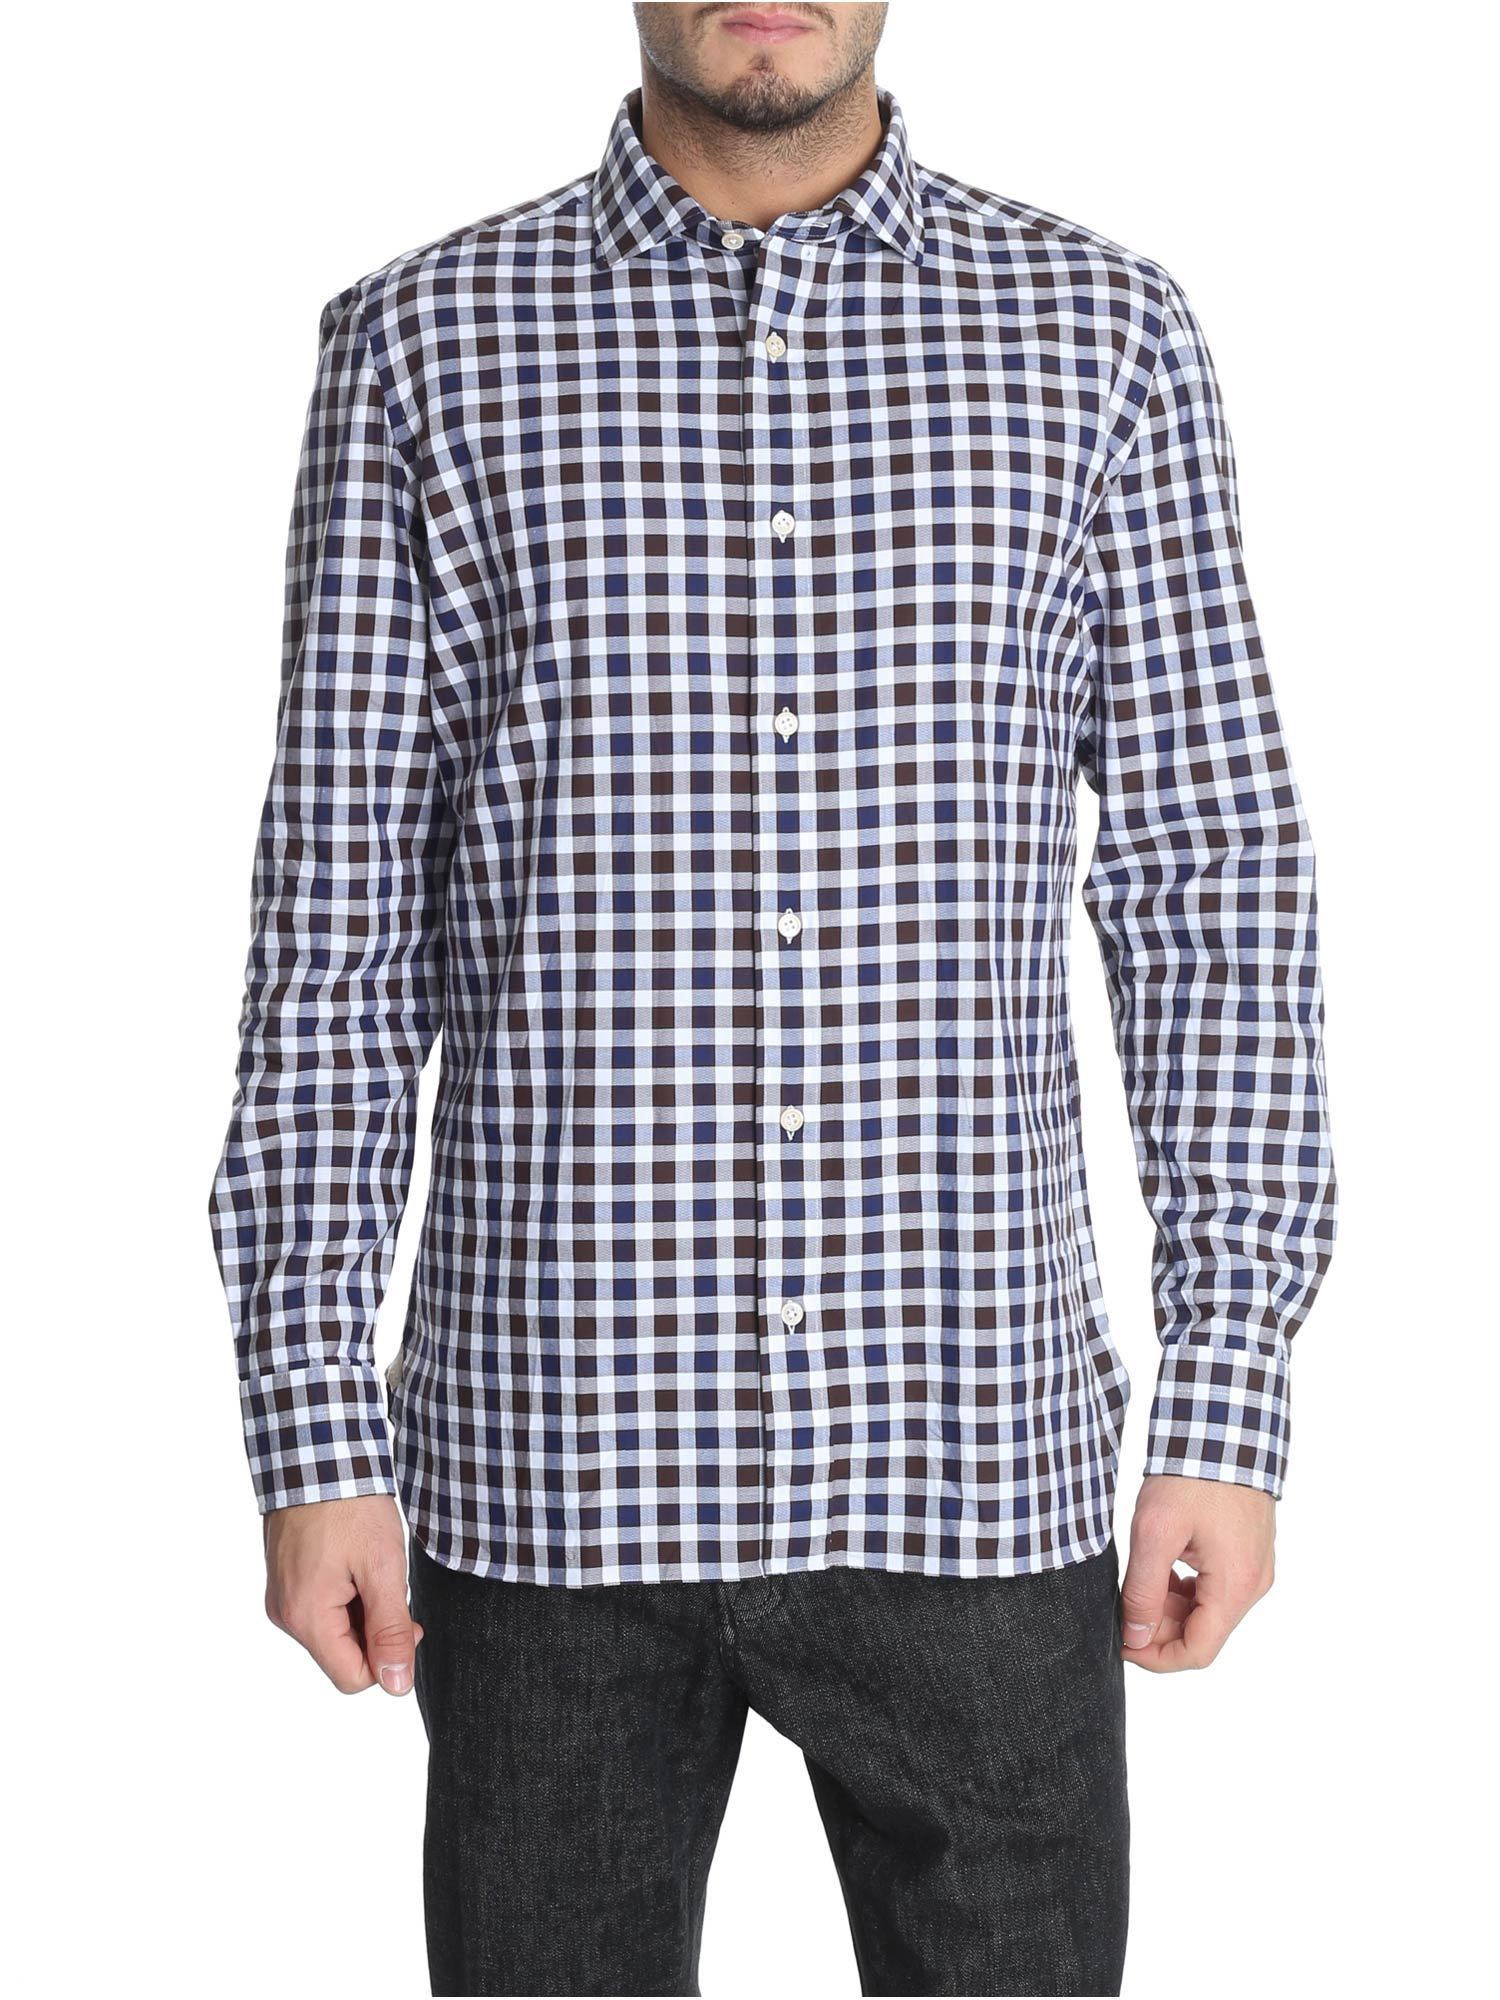 LUIGI BORRELLI Check Print Shirt in White/Blue/Brown